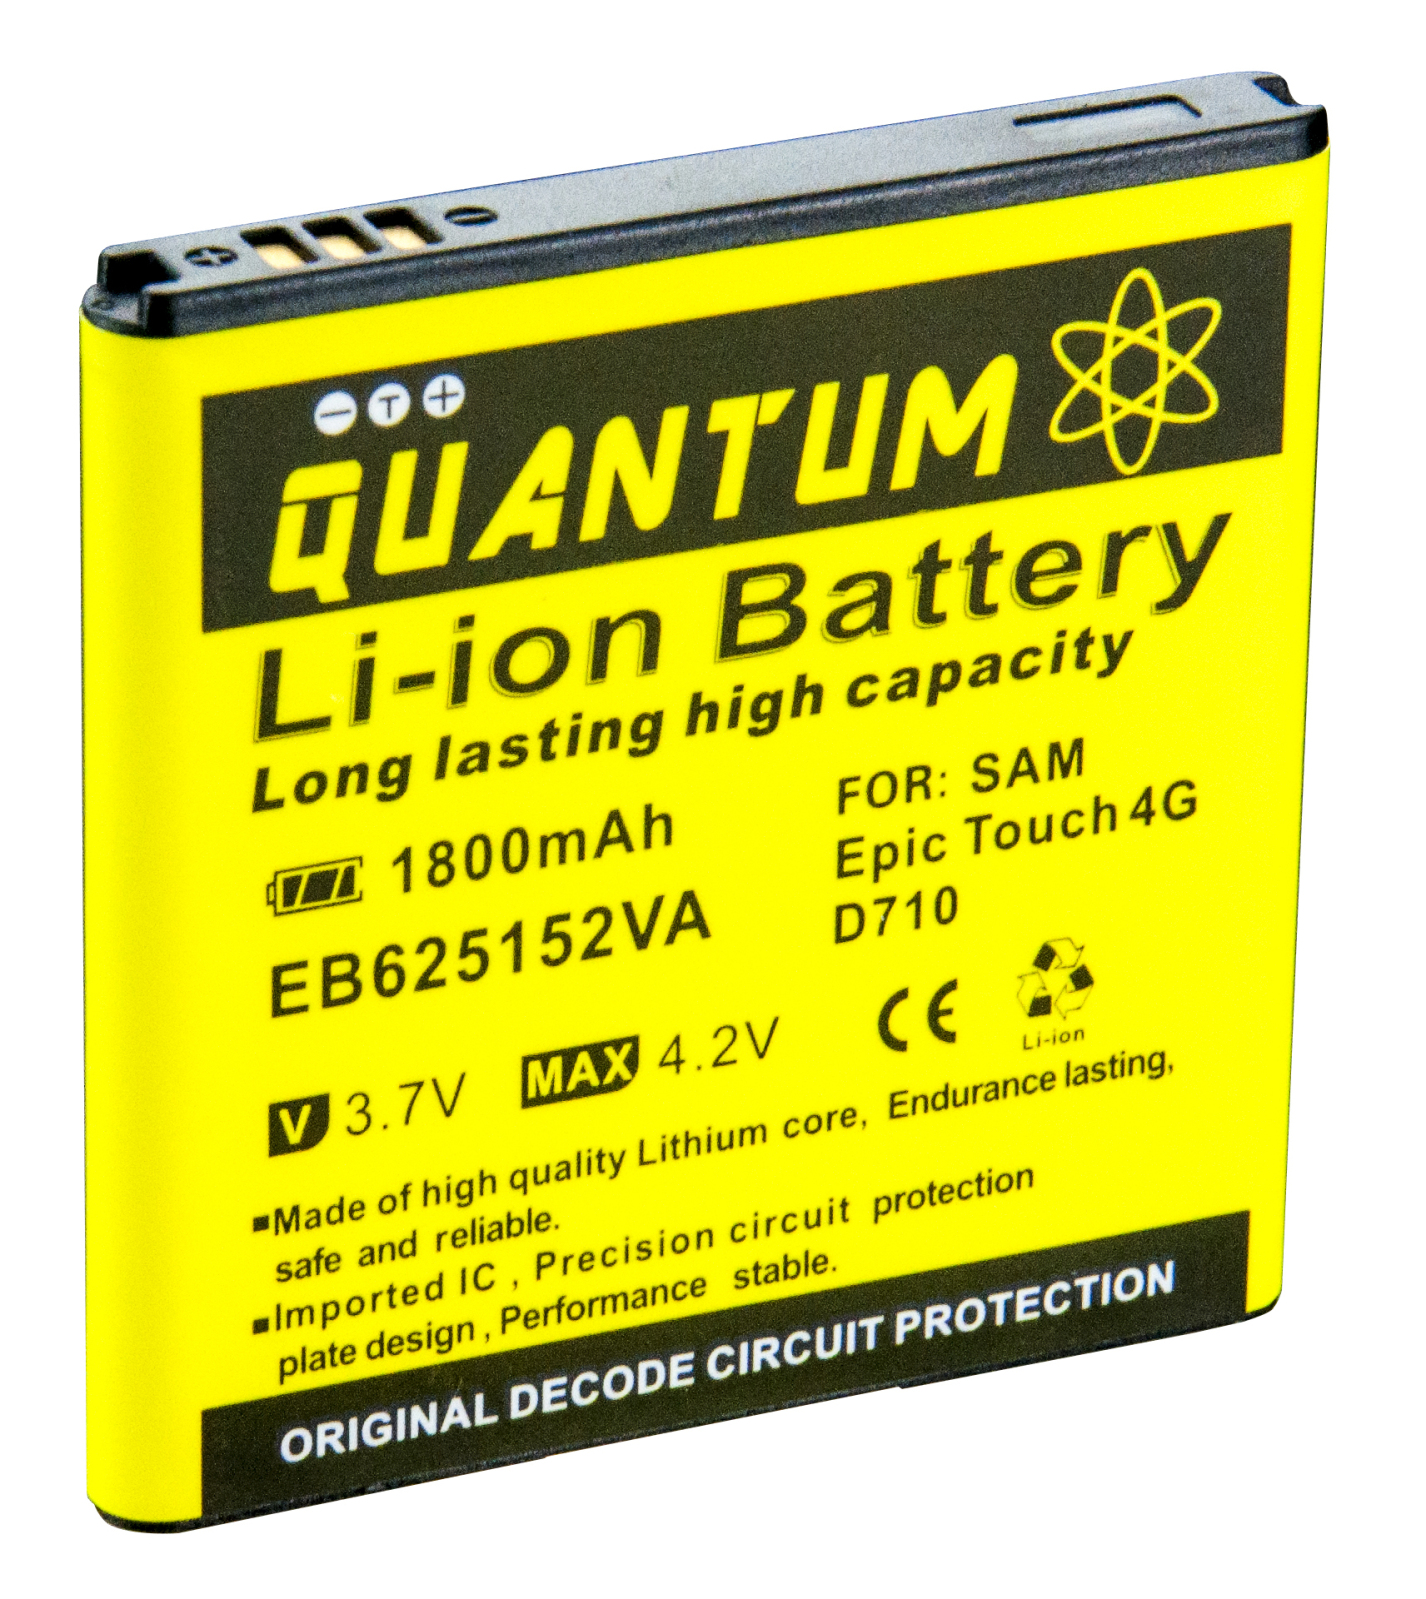 QUANTUM 1,800 mAh Battery for Galaxy S2 Epic 4G Touch SPH-D710, 12 MONTH WARRANTY